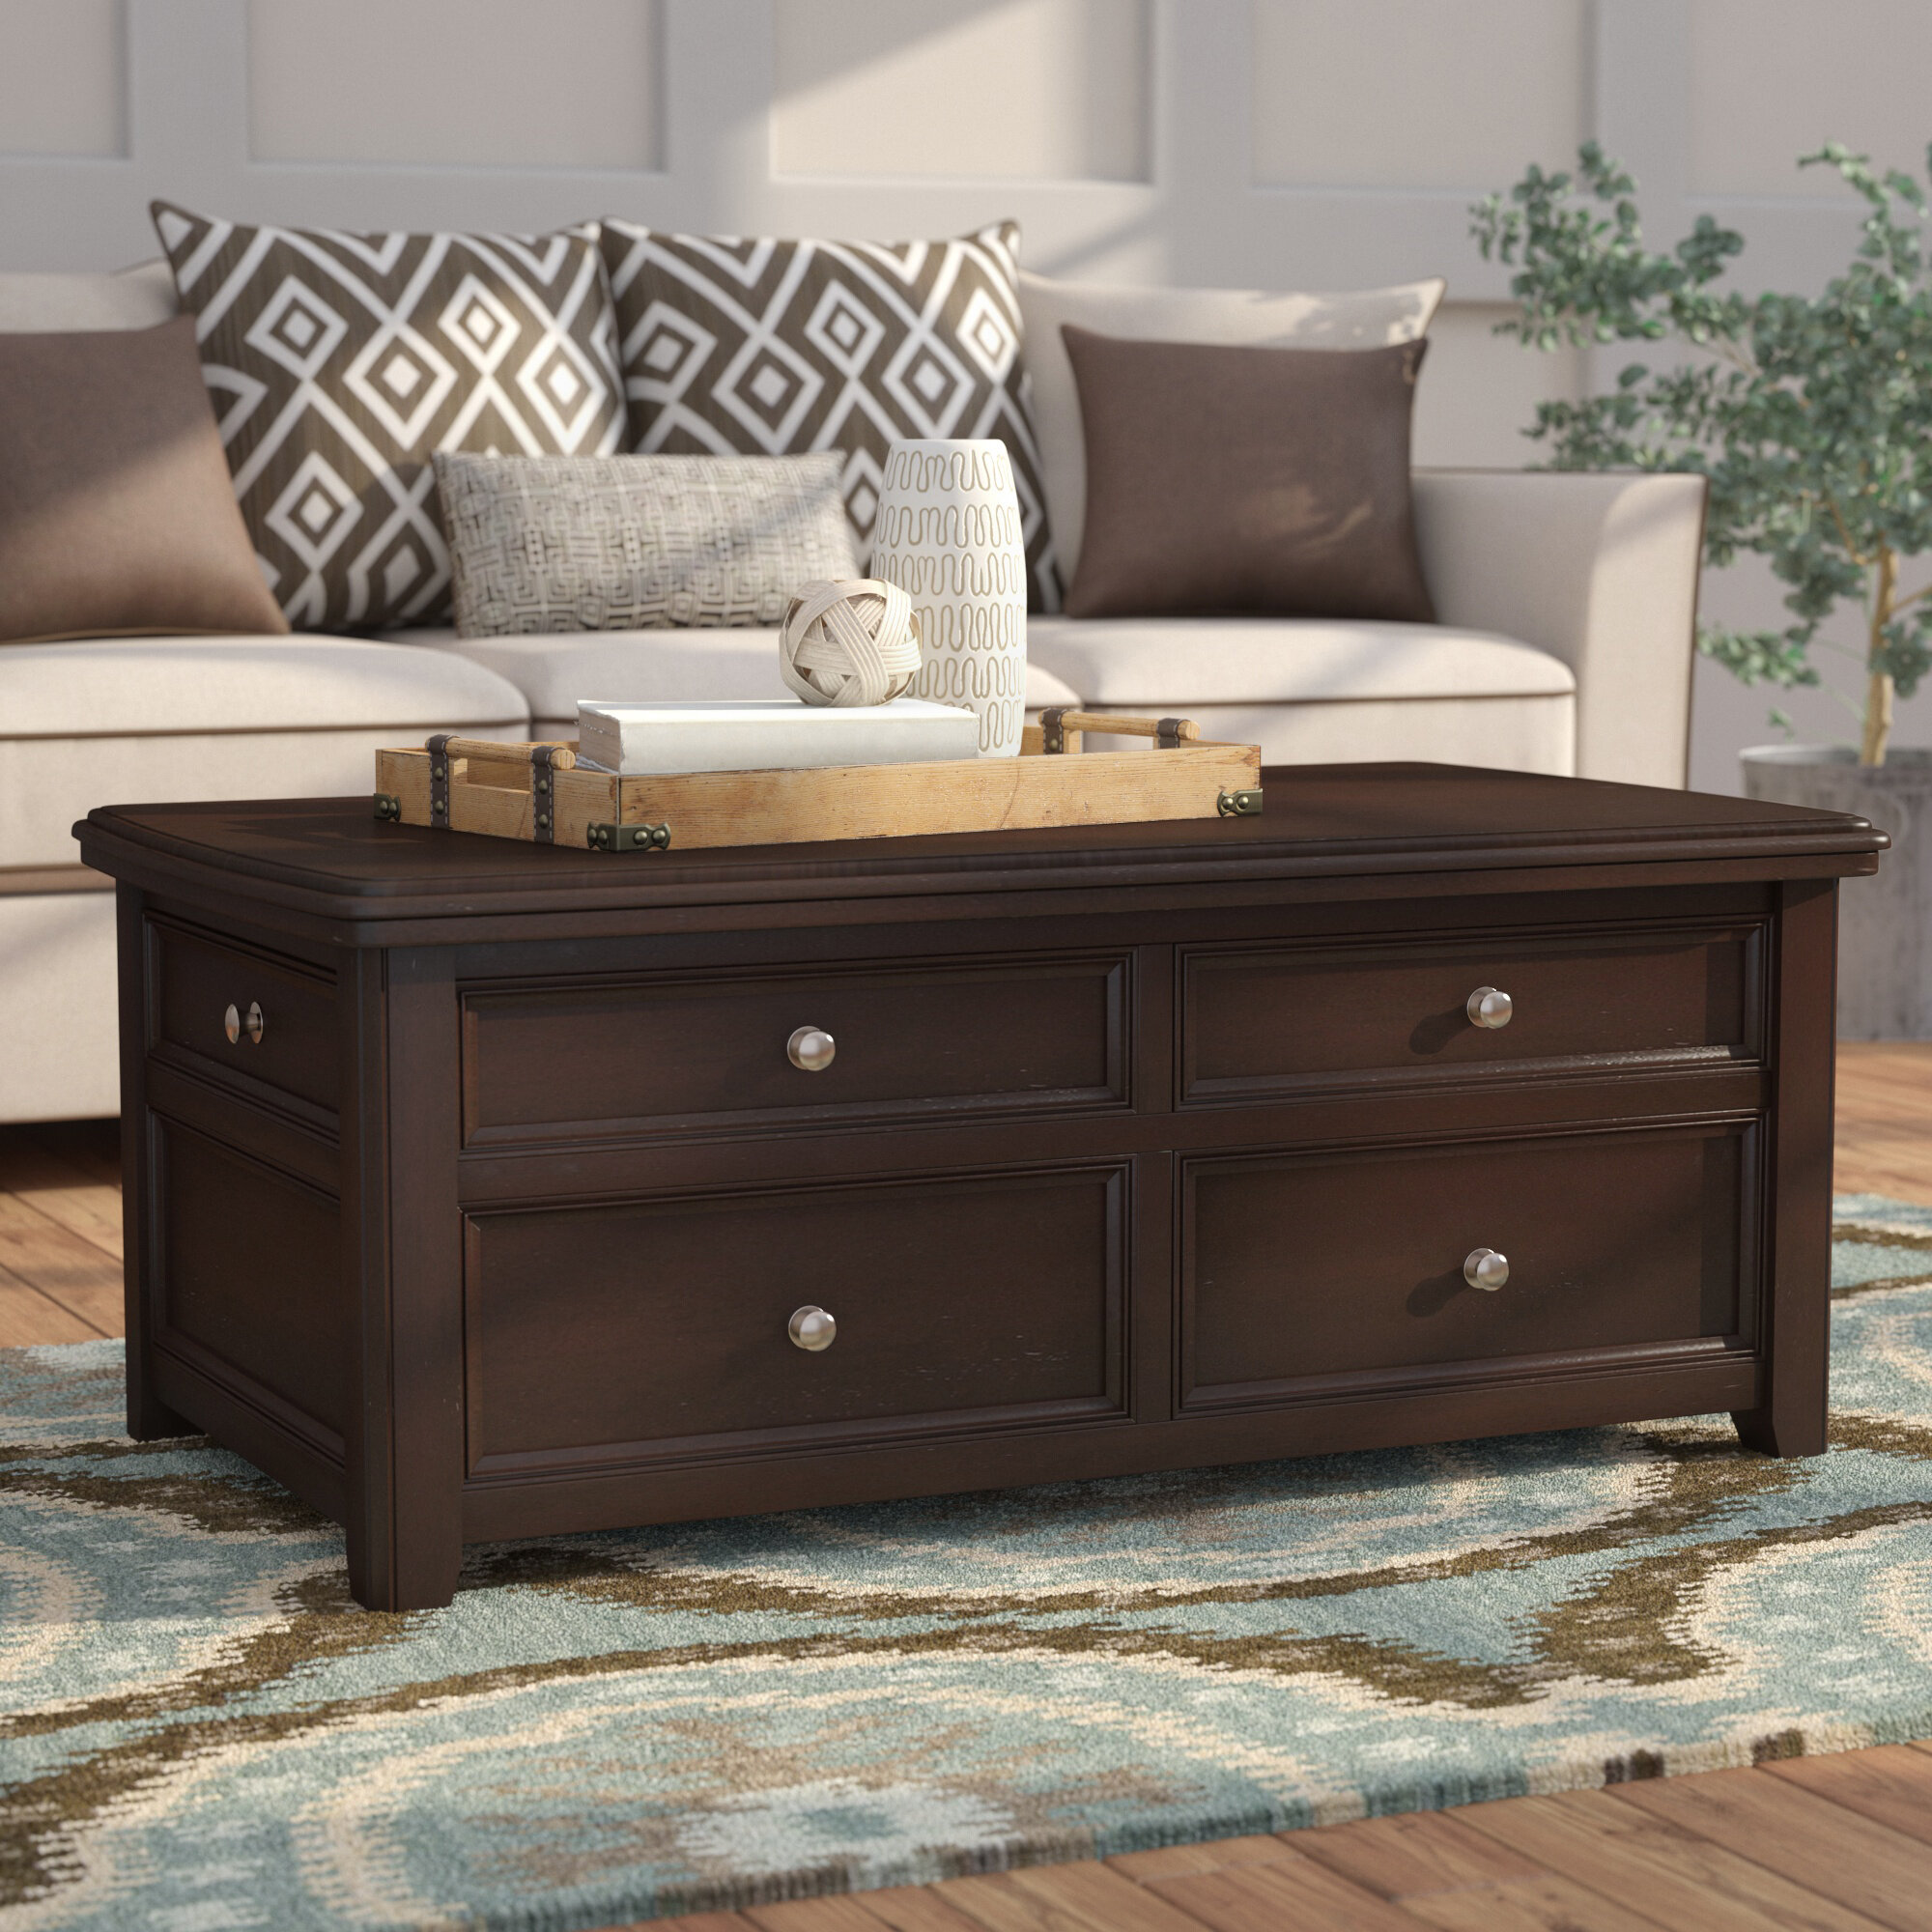 Darby Home Co Hancock Trunk Coffee Table with Lift Top & Reviews